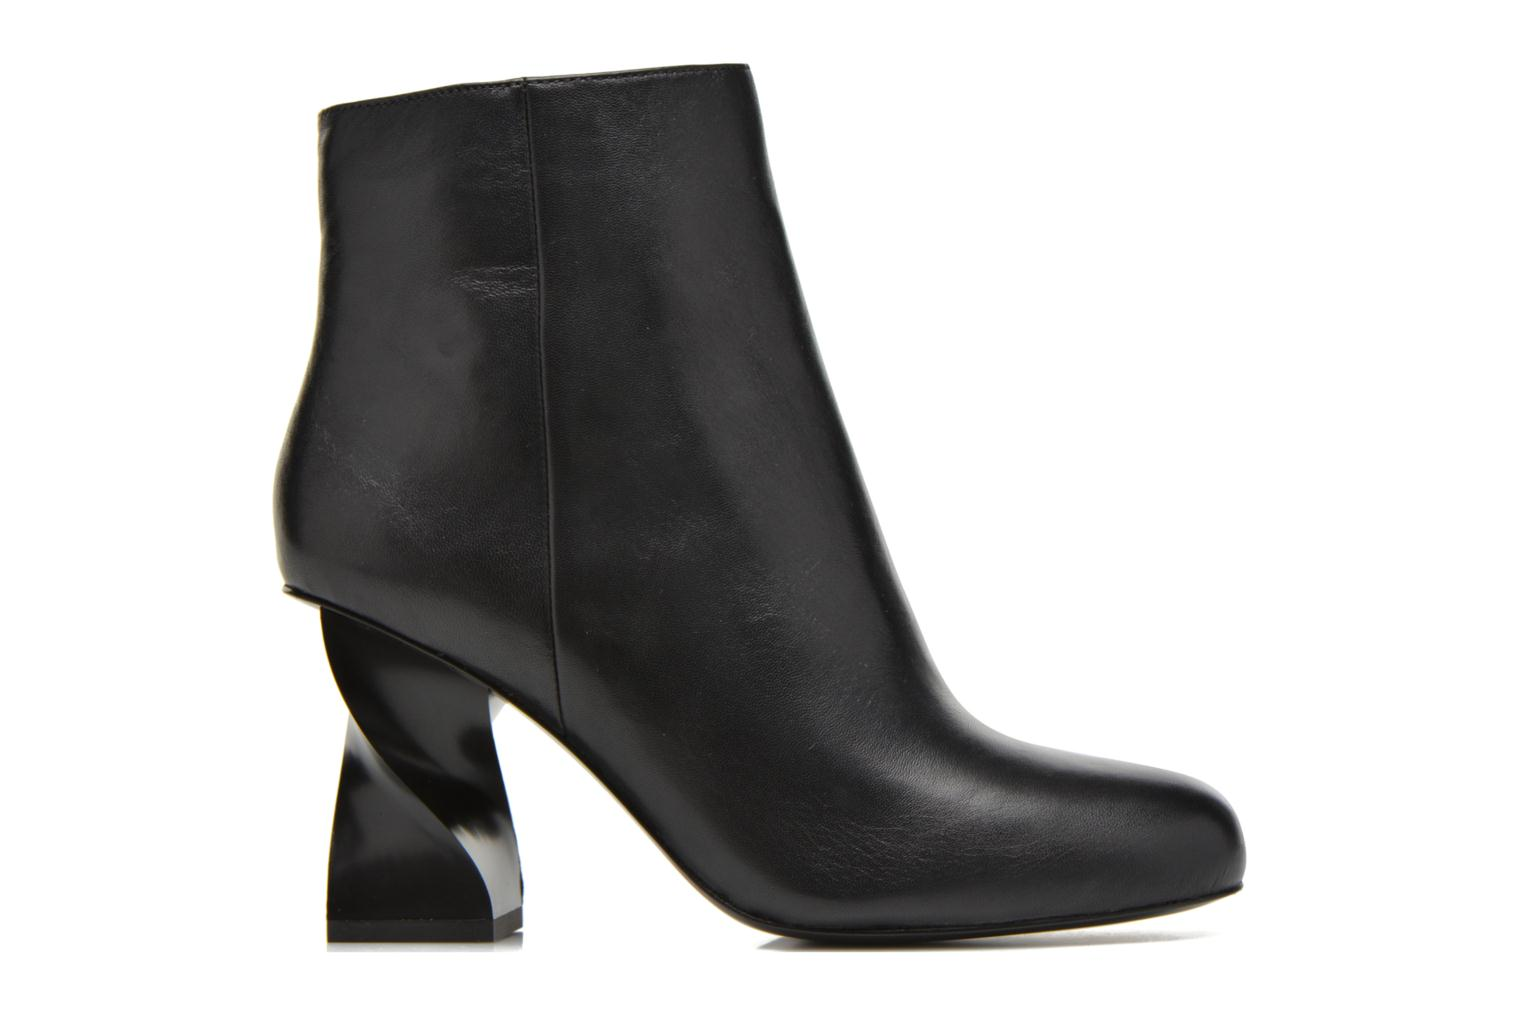 Bottines et boots Opening Ceremony ELOYSE TWISTED HIGH HEEL BOOTIE Noir vue derrière